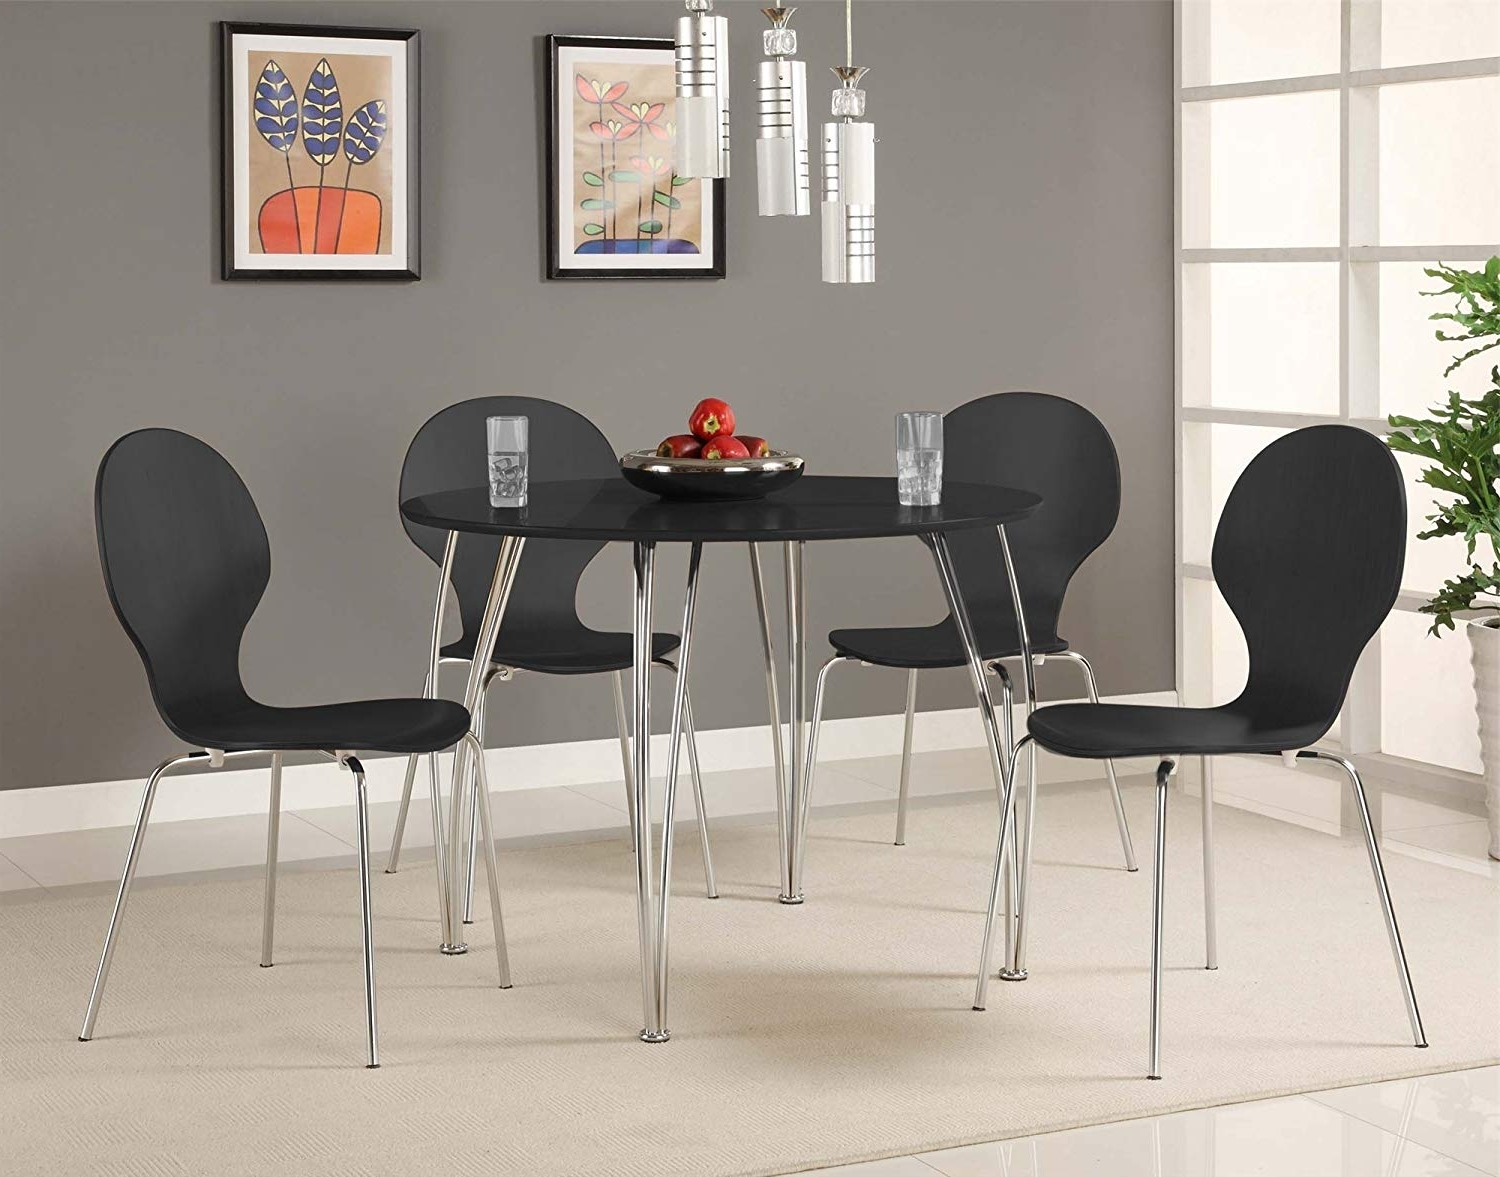 Widely Used Round Acrylic Dining Tables Within Amazon: Dhp Bentwood Round Dining Table Top, Contemporary Design (View 25 of 25)